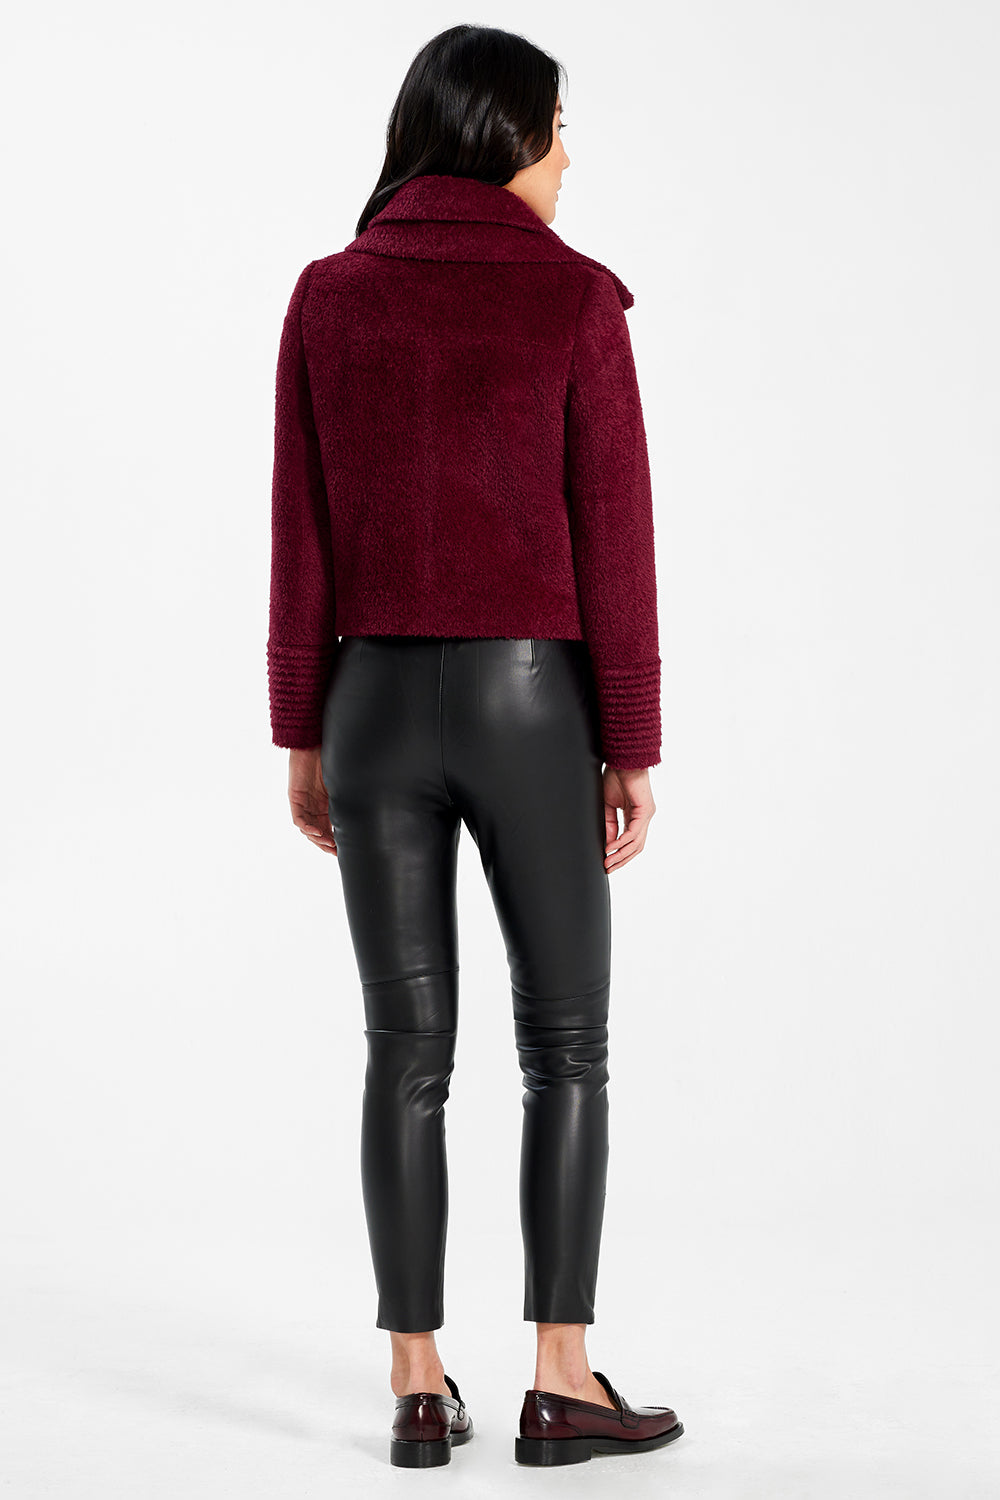 Sentaler Bouclé Alpaca Moto Jacket with Signature Double Collar featured in Bouclé Alpaca and available in Garnet Red. Seen from back.